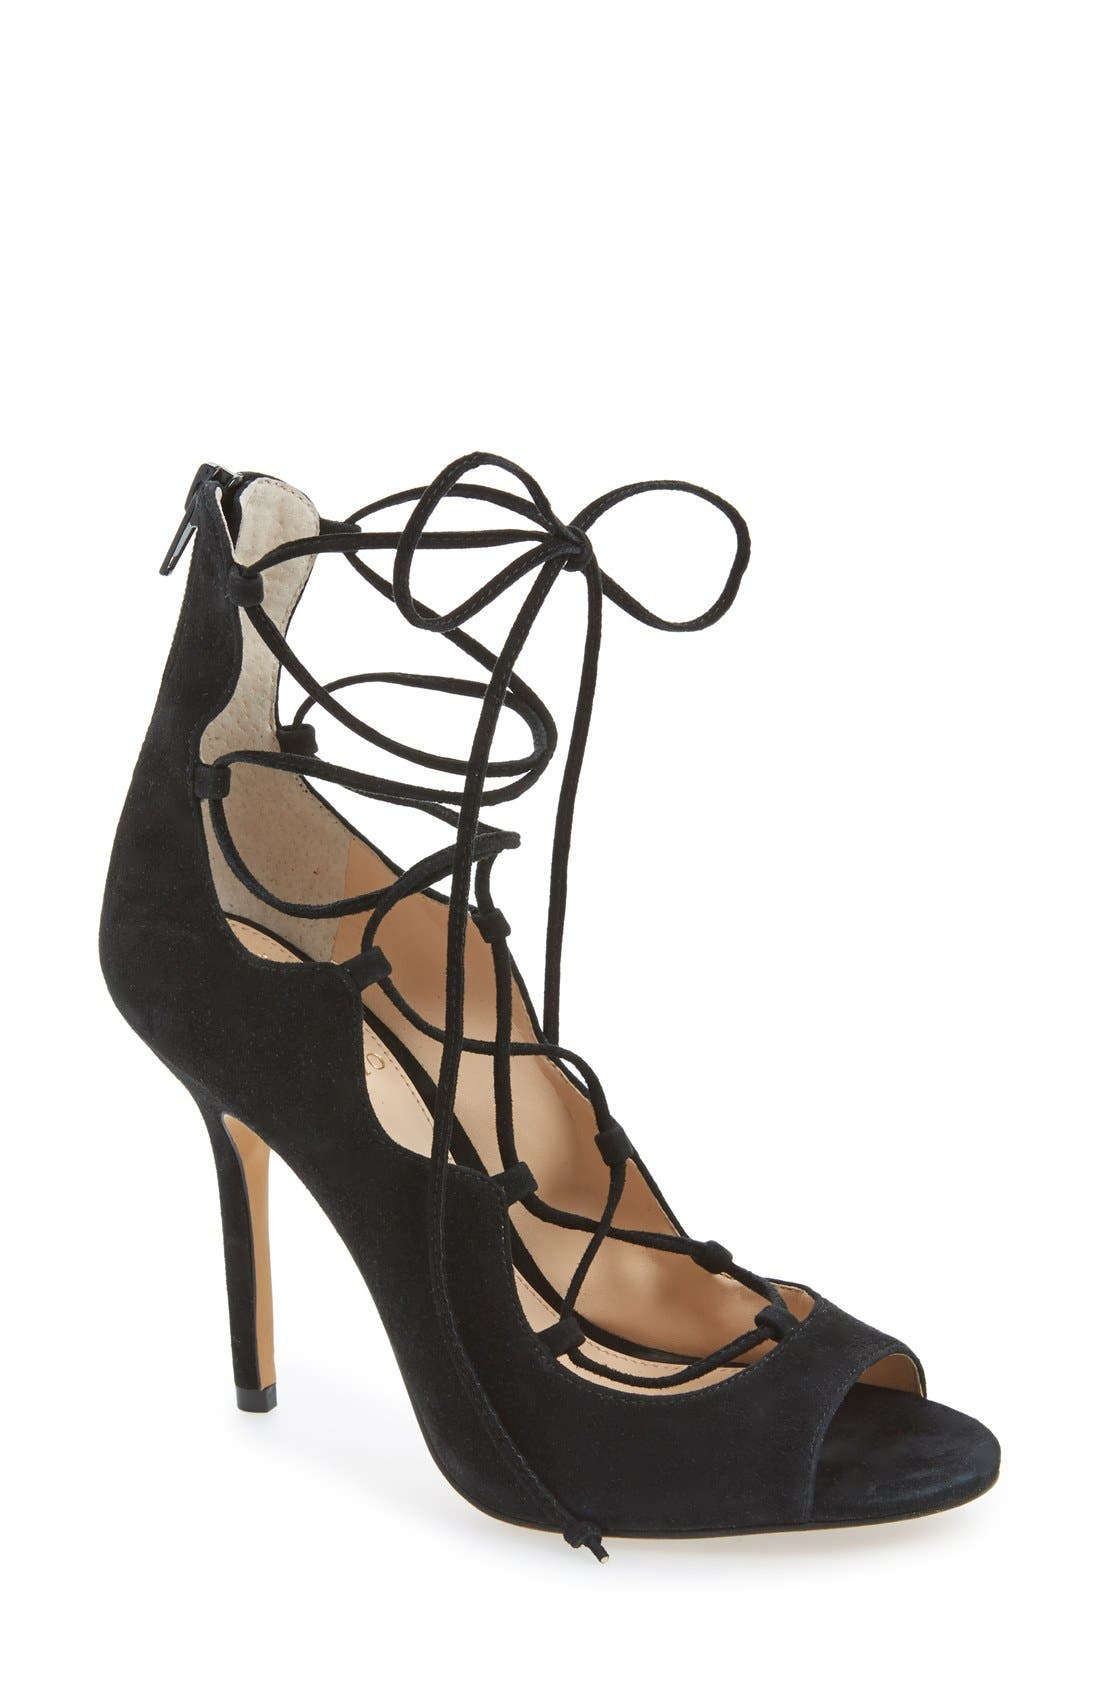 Main Image - Vince Camuto 'Sandria' Peep Toe Ghillie Sandal (Women) (Nordstrom Exclusive)